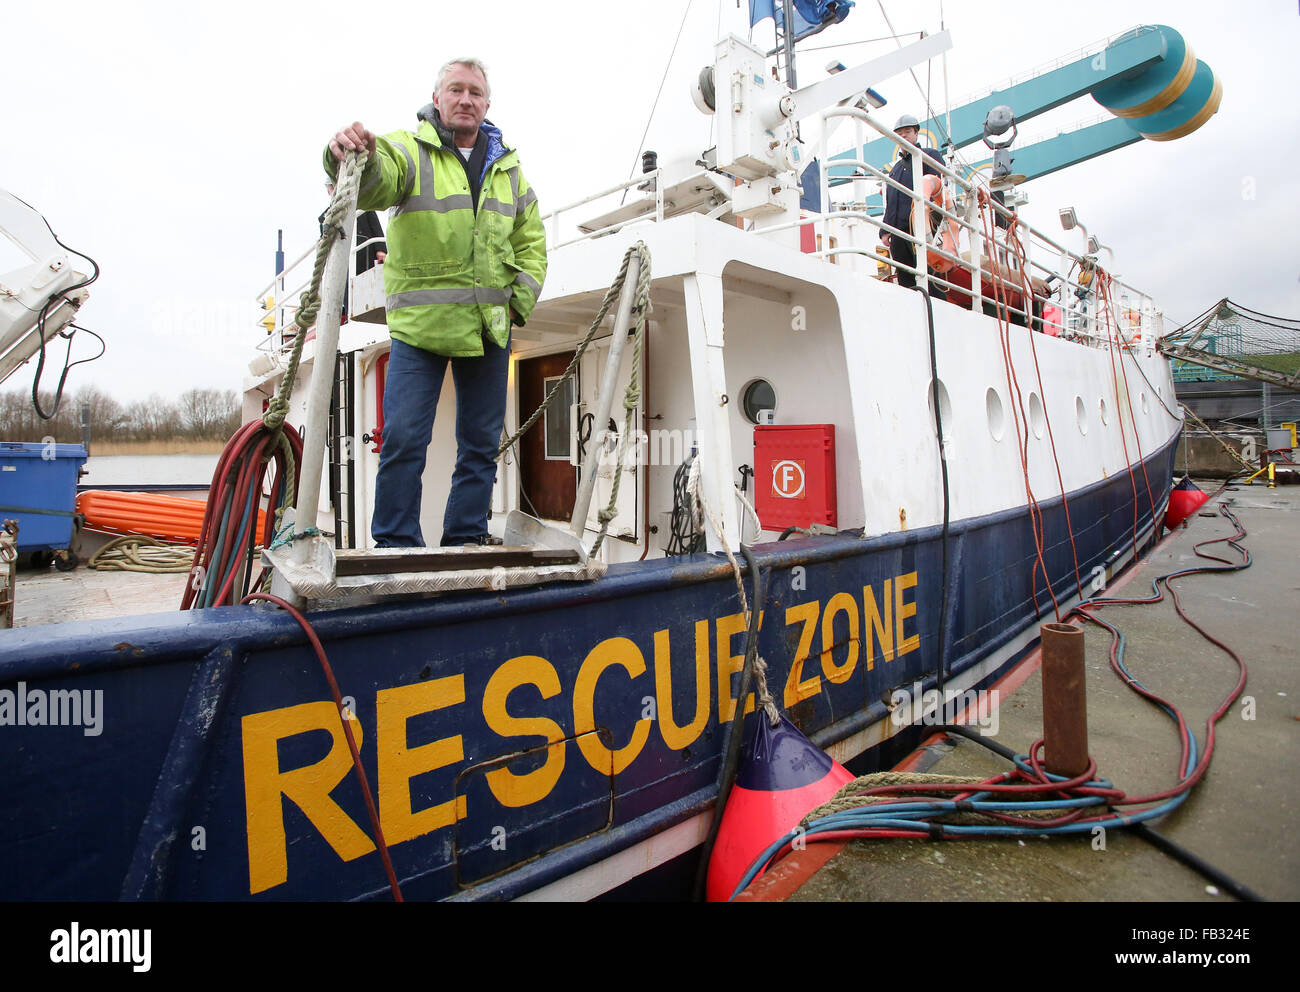 Hamburg, Germany. 08th Jan, 2016. Sea Watch Skipper Ingo Werth on the former research vessel 'Clupea', which - Stock Image